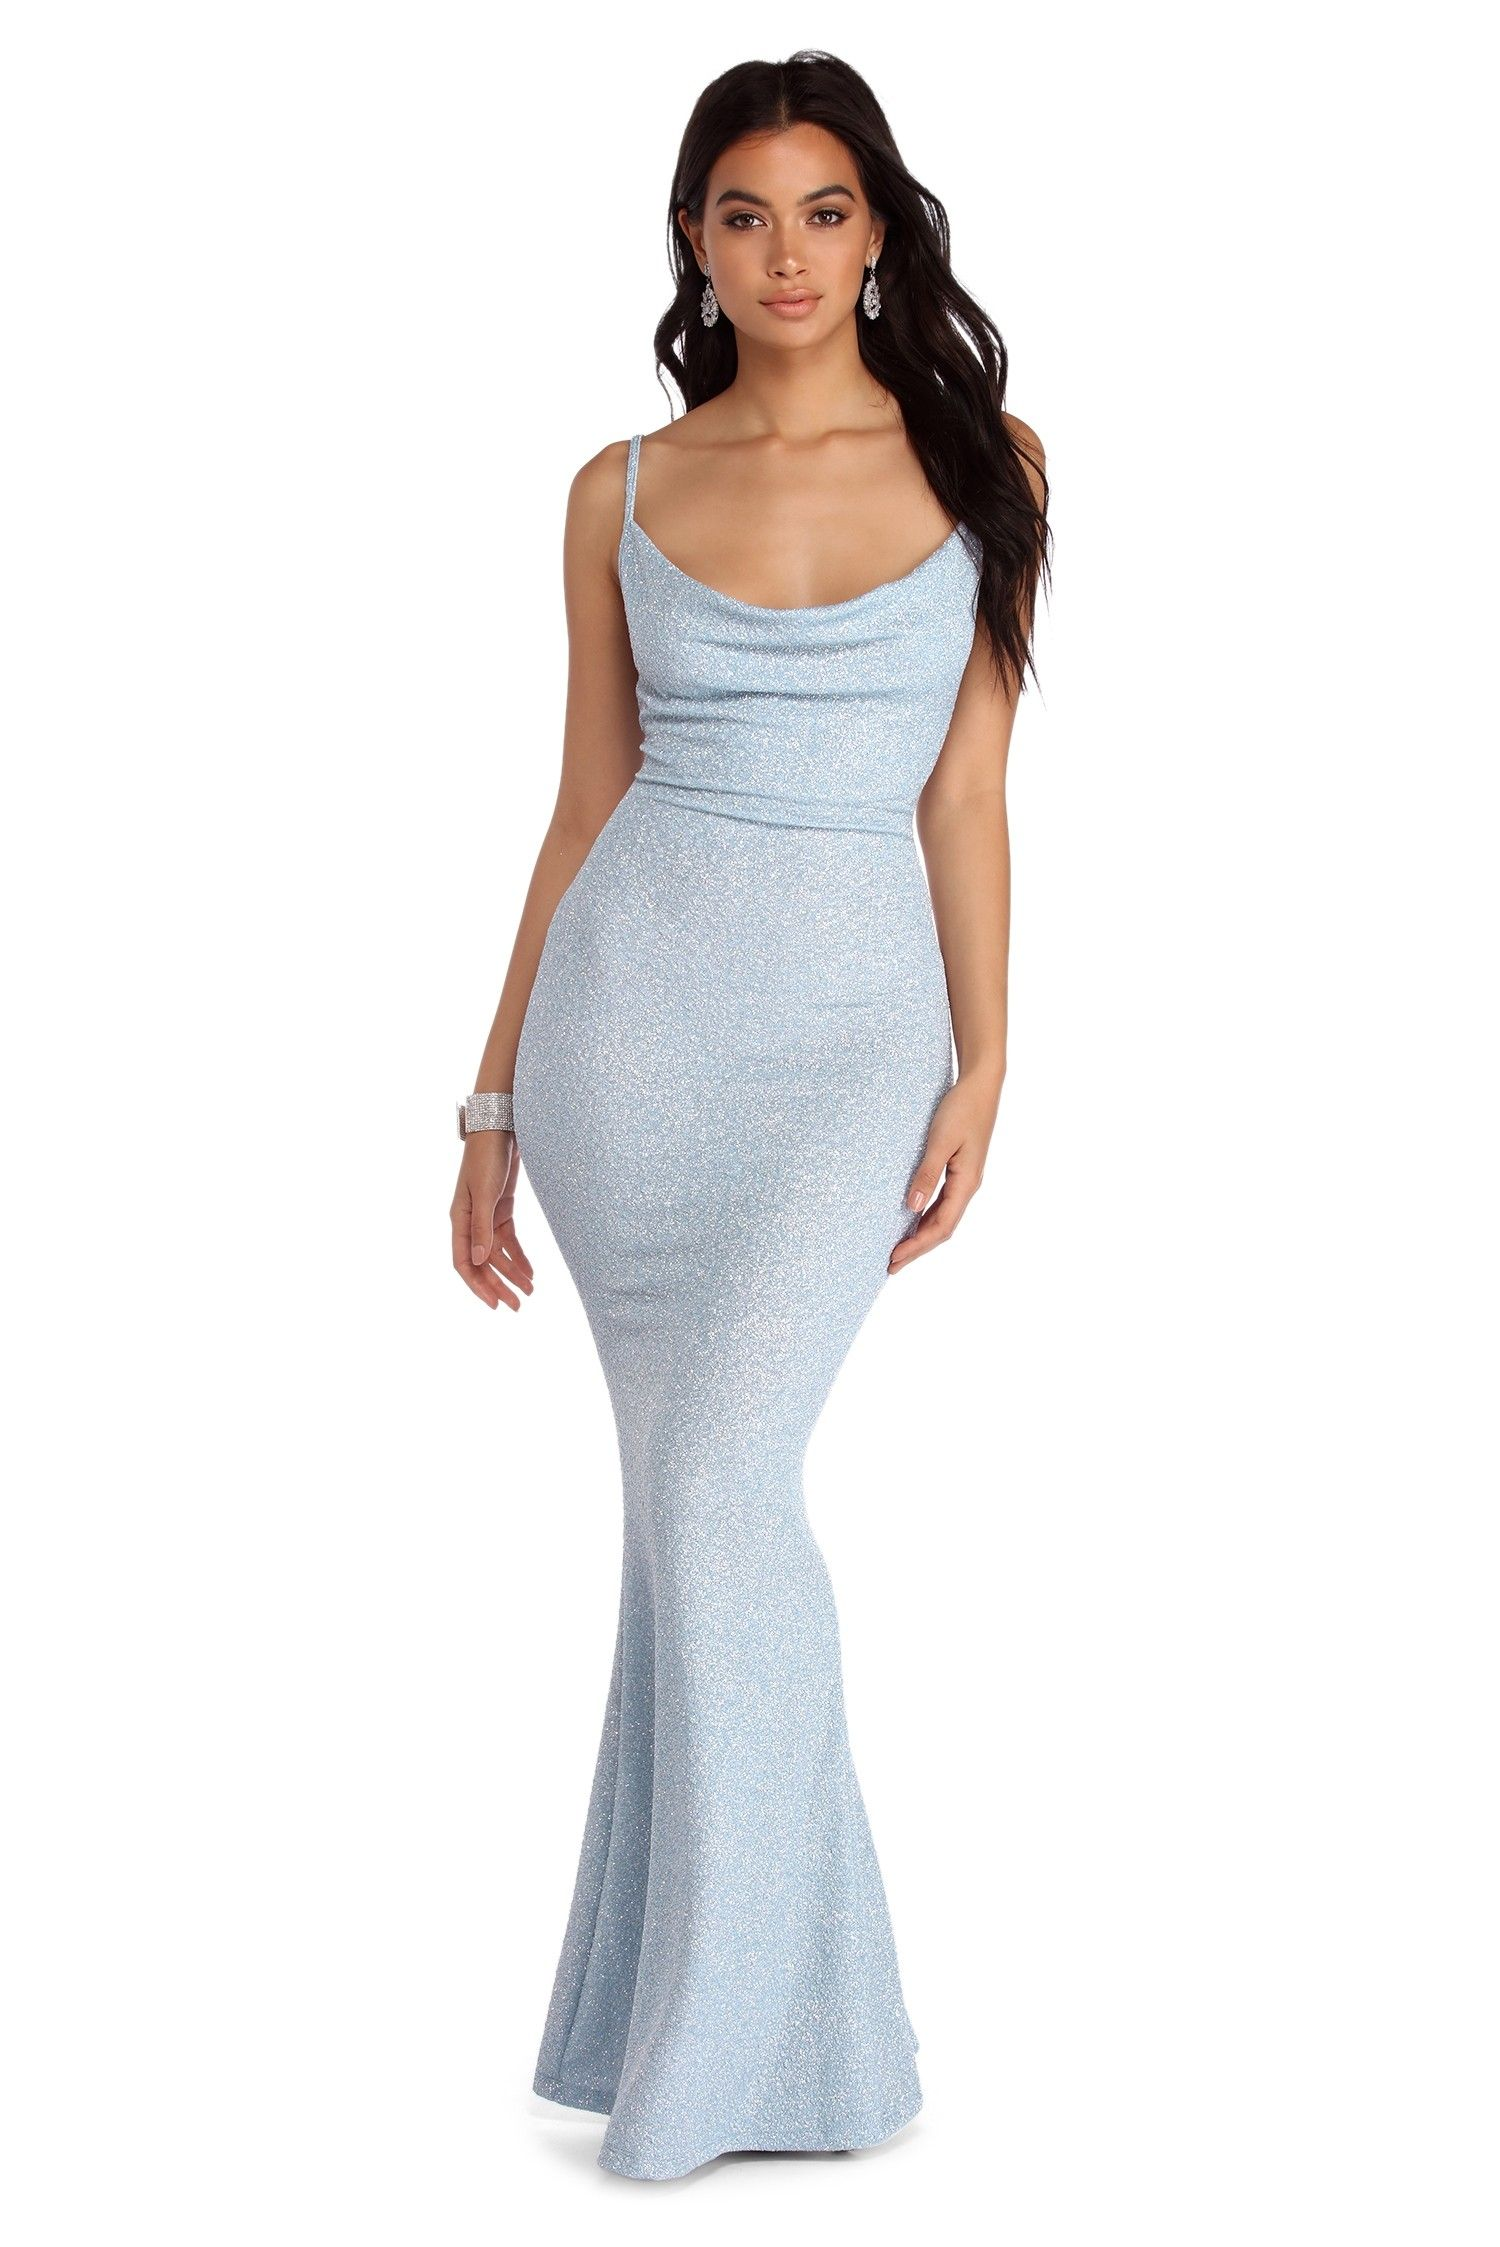 Stella Glitter Formal Cowl Dress Blue Sparkly Dress Old Hollywood Dress Prom Dresses With Sleeves